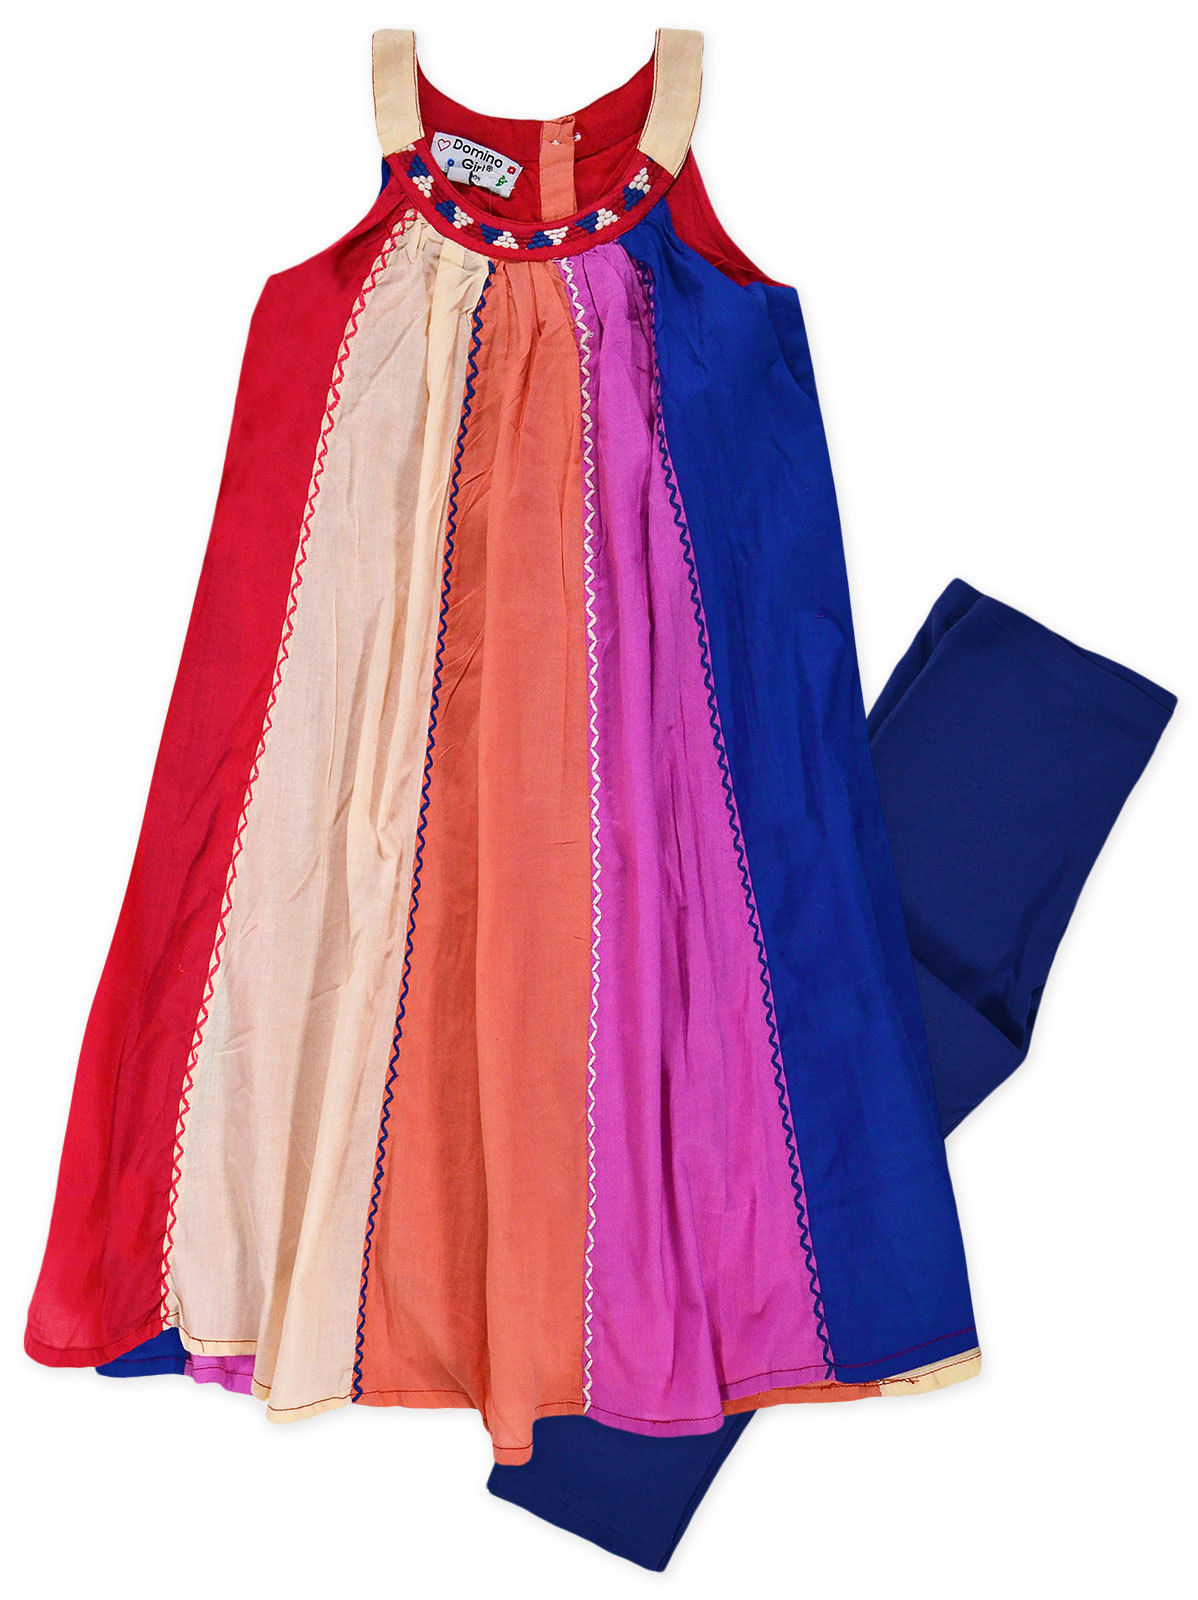 Girls Dress Legging Set New Kids Lace Bow Chiffon Tunic Top Outfit Ages 2-10 Yrs